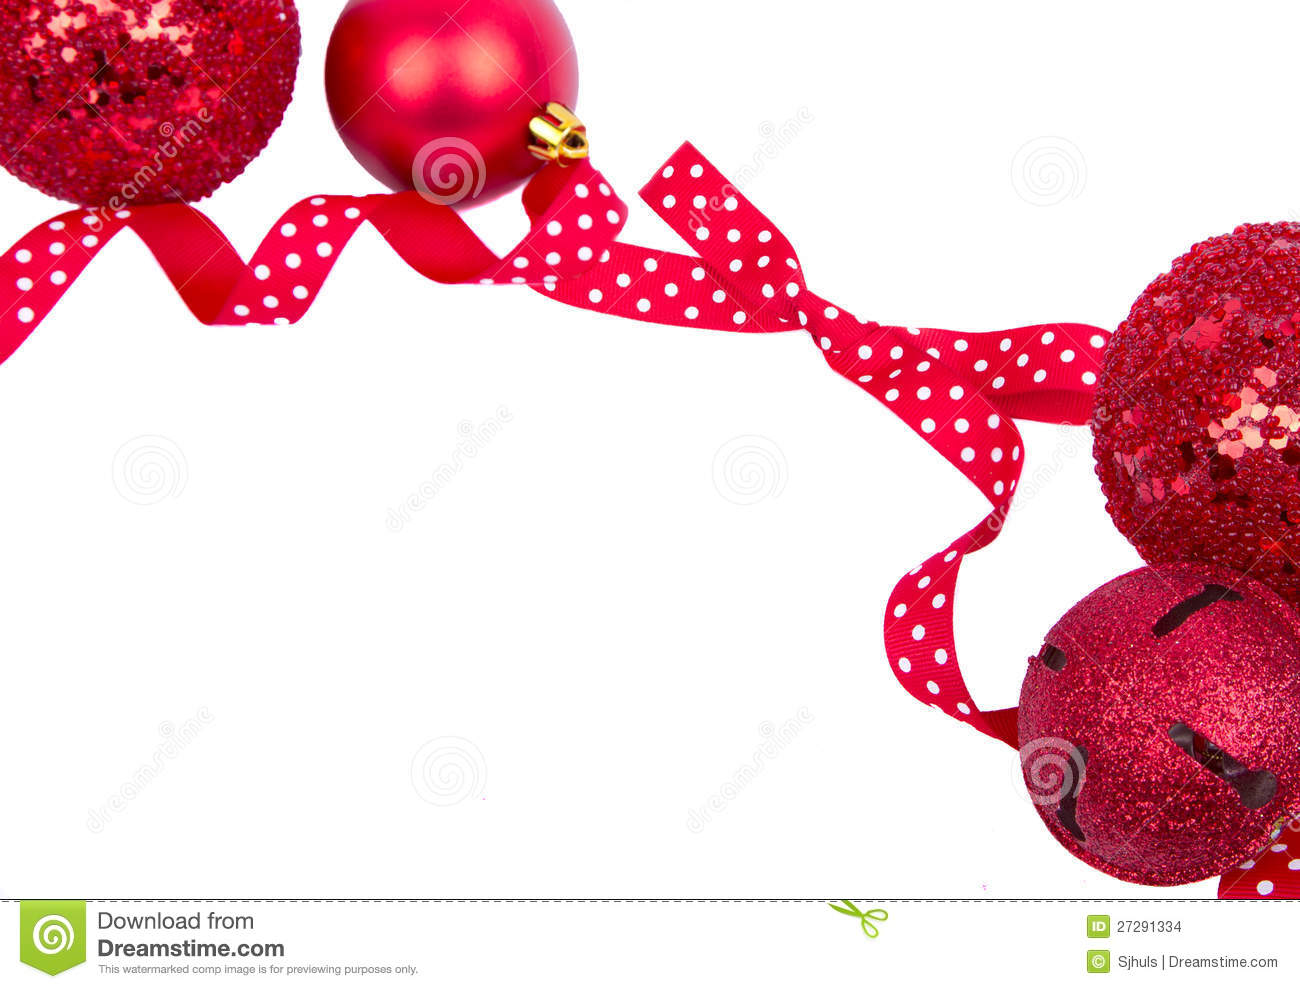 Polka dot christmas ornaments - Red Polka Dot Bow With Christmas Ornaments